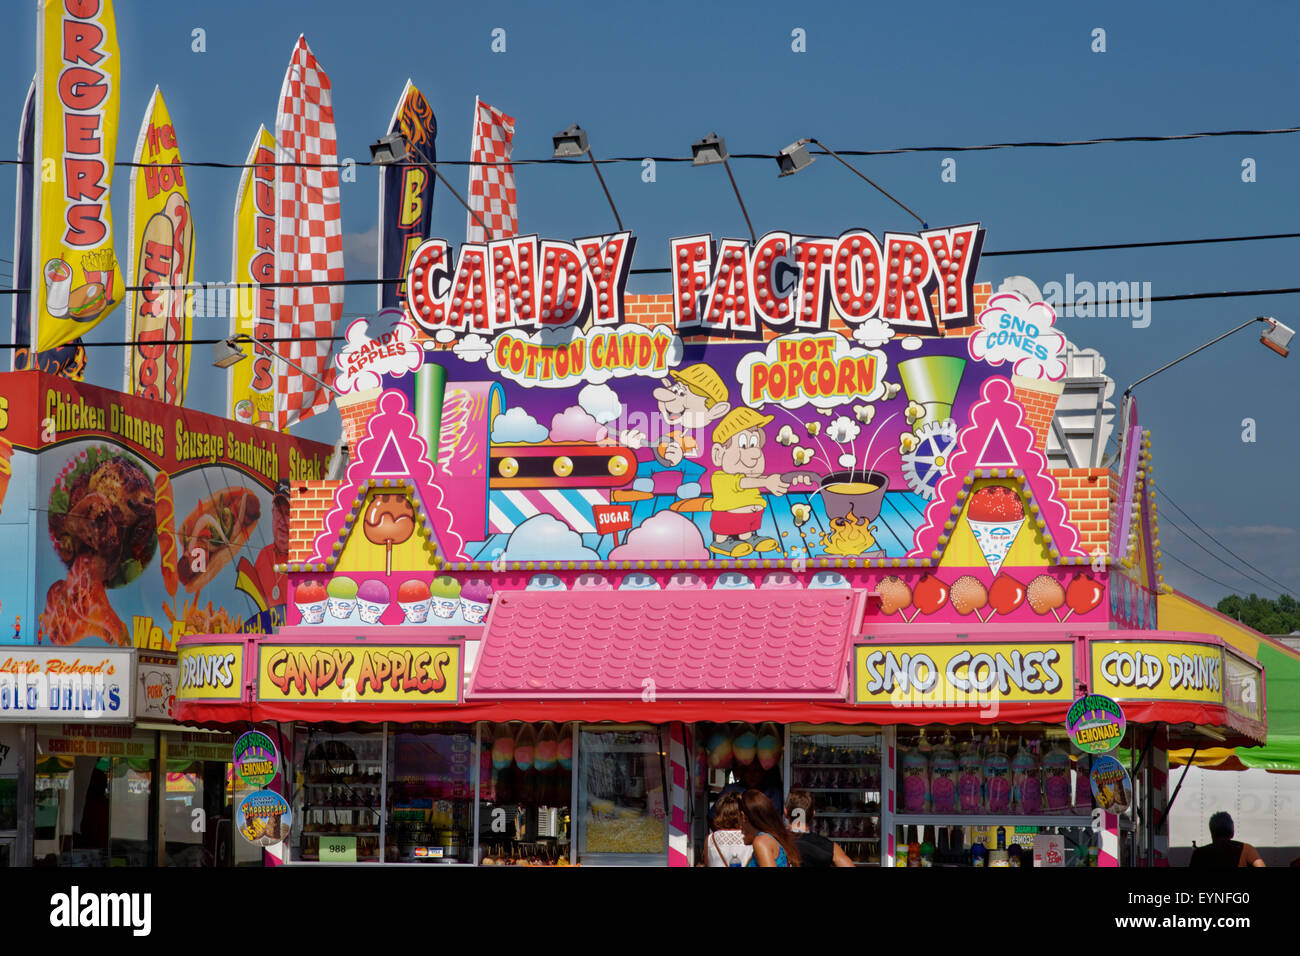 Candy Factory Stock Photo Royalty Free Image 85910384